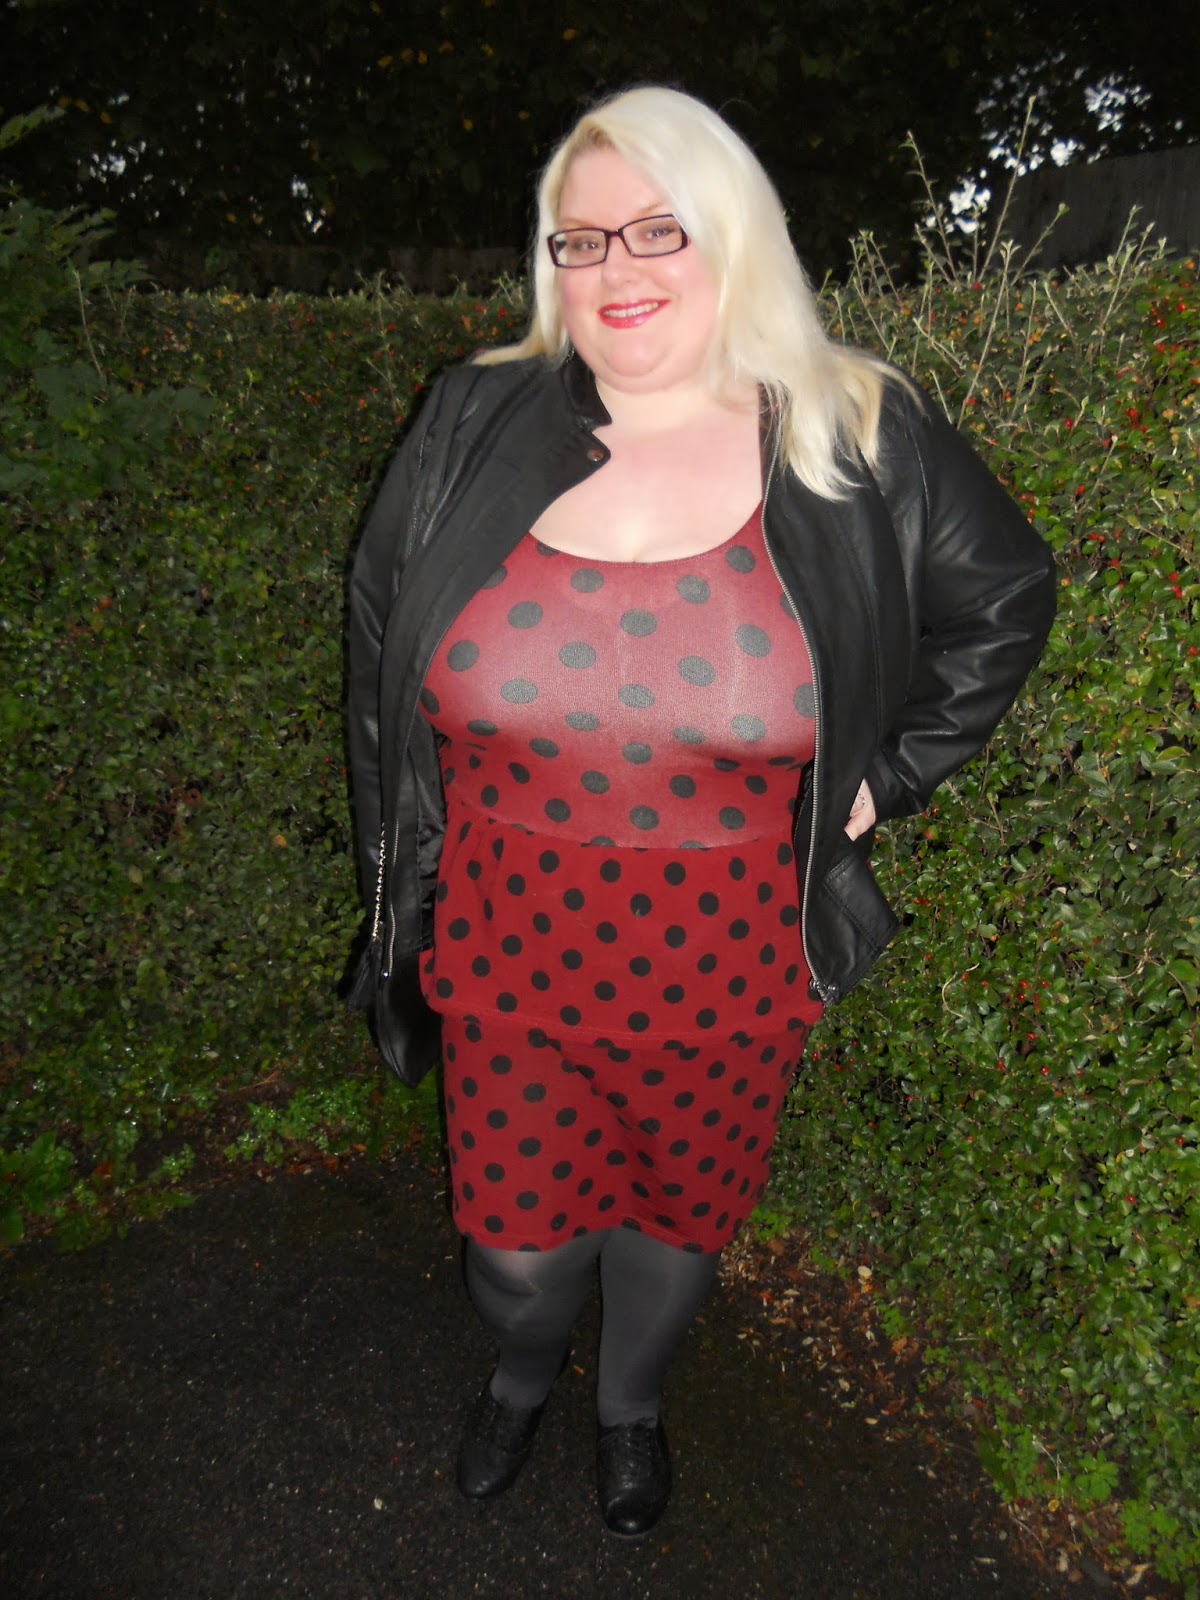 6317a10ad0c OOTD- Another polka dot obsession - Mookie s Life